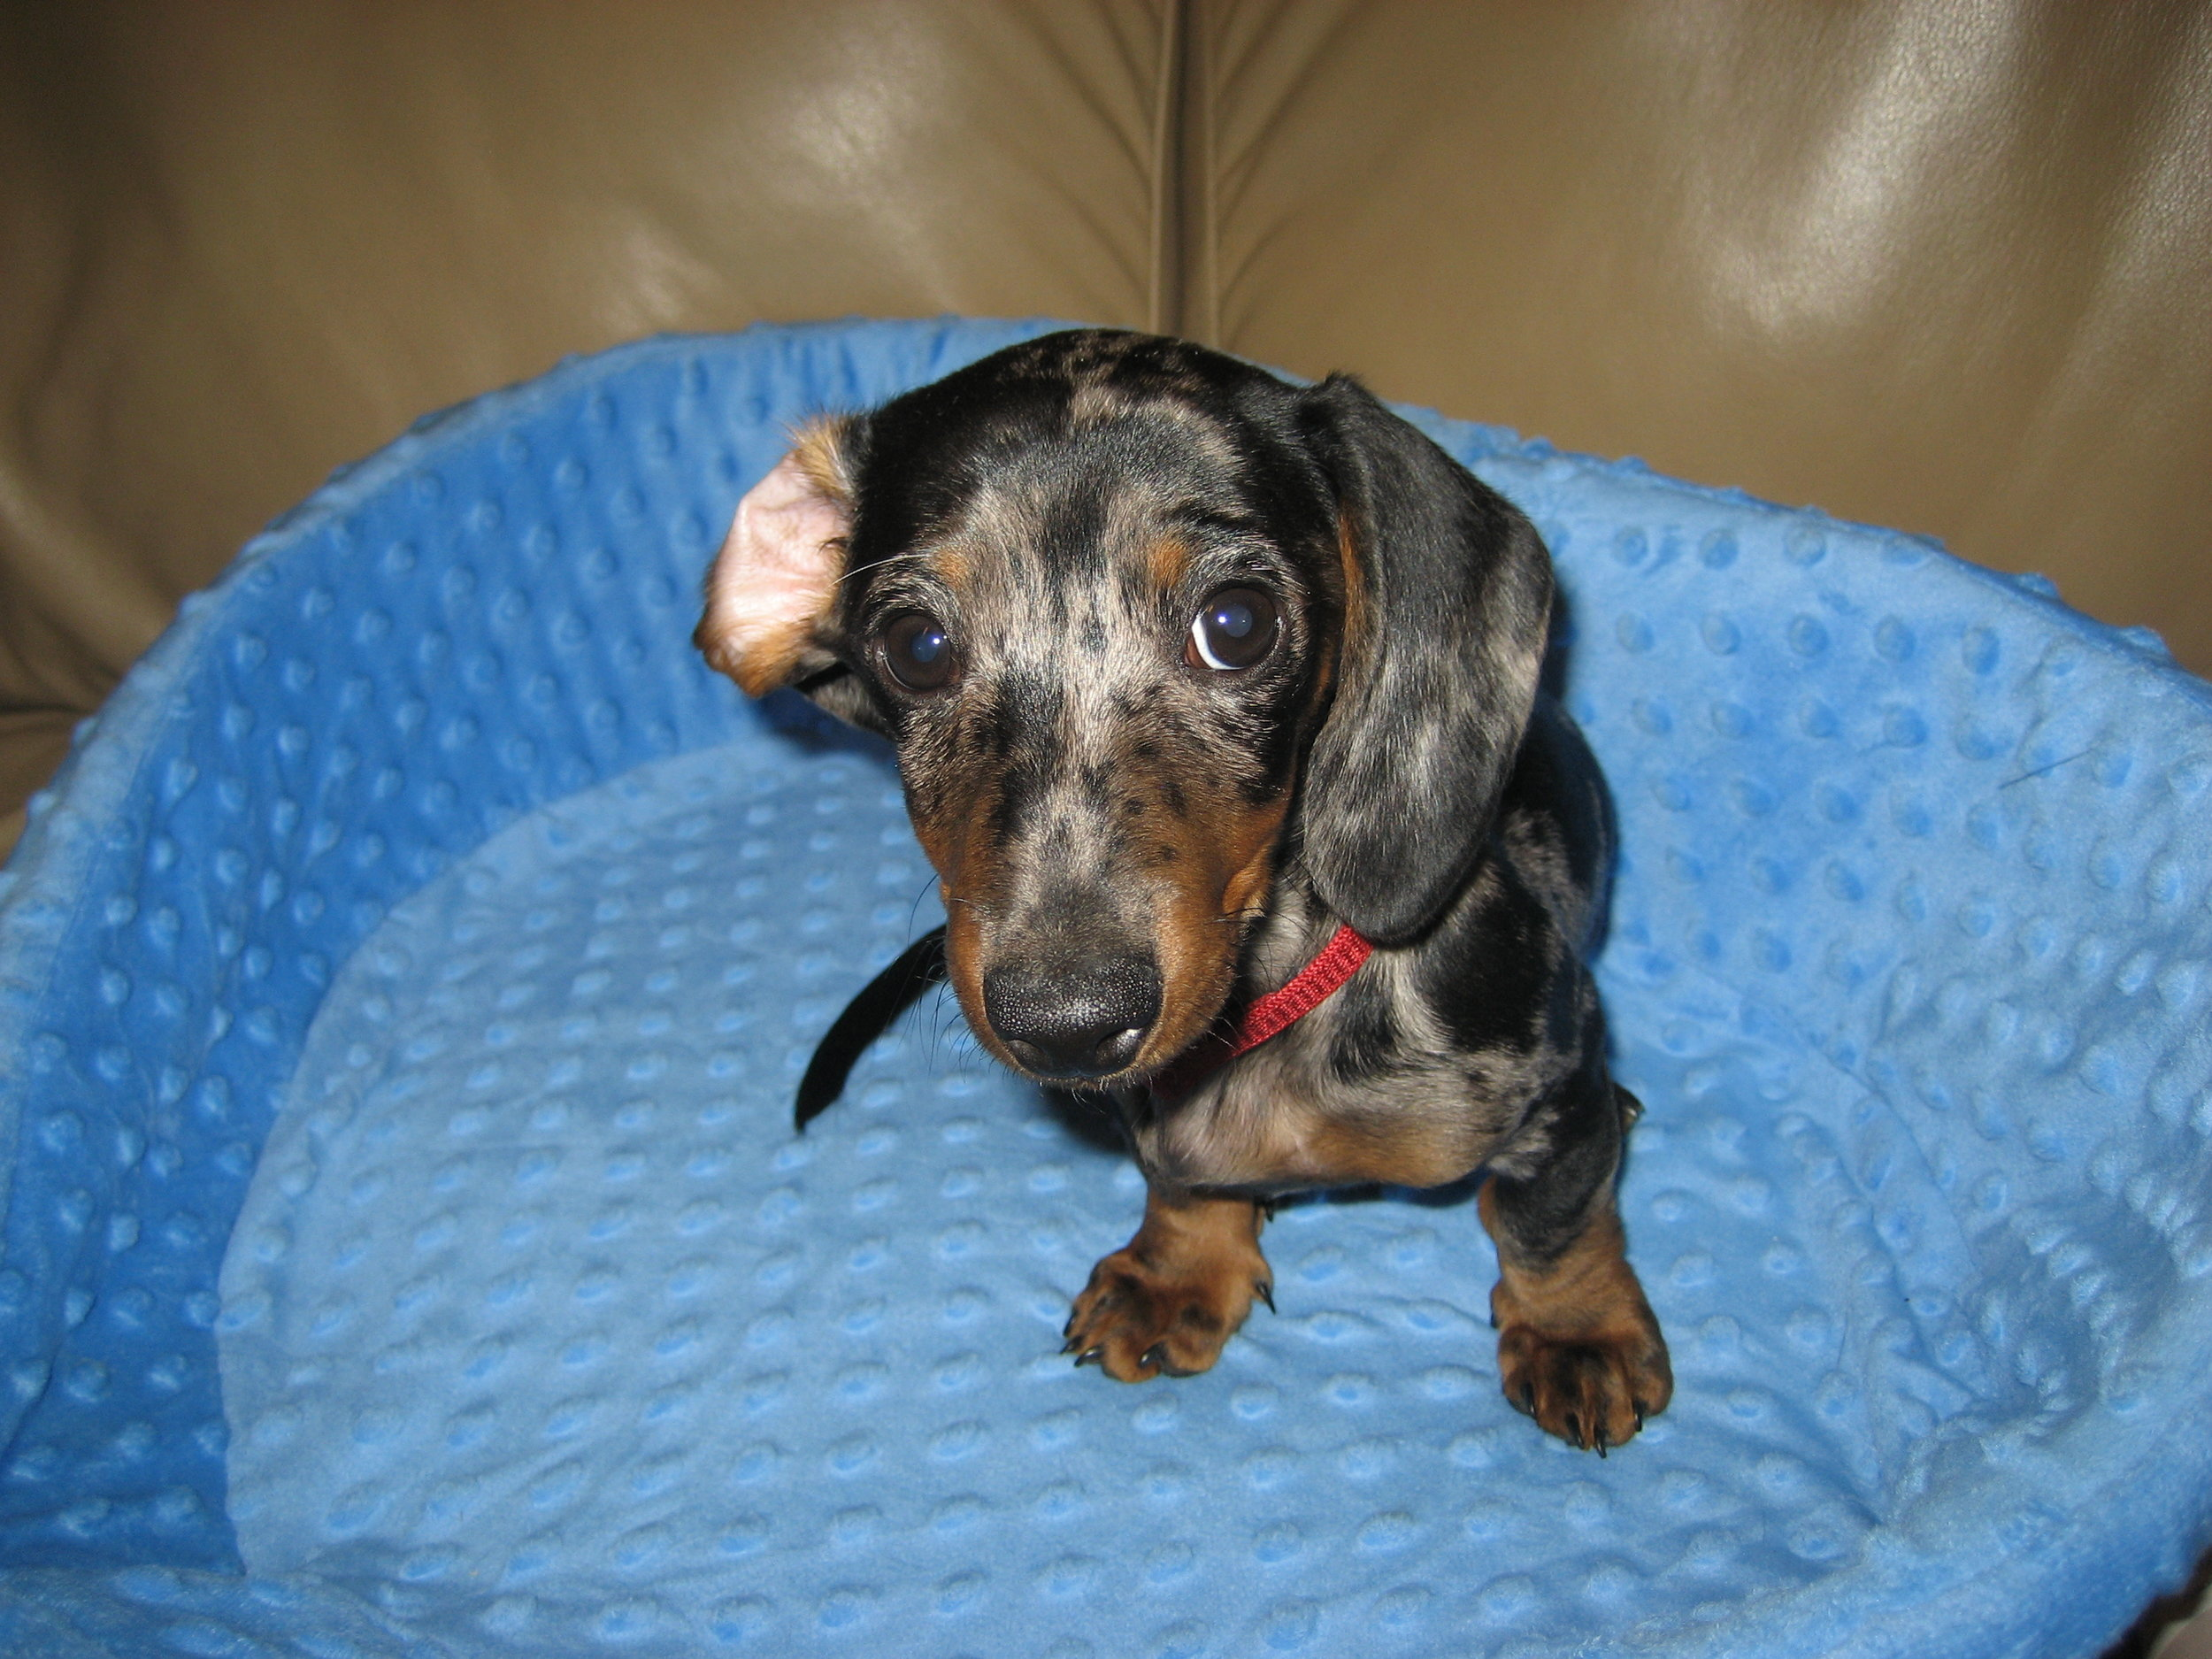 That tiny nose though. I die. BRB getting another Dachshund puppy….